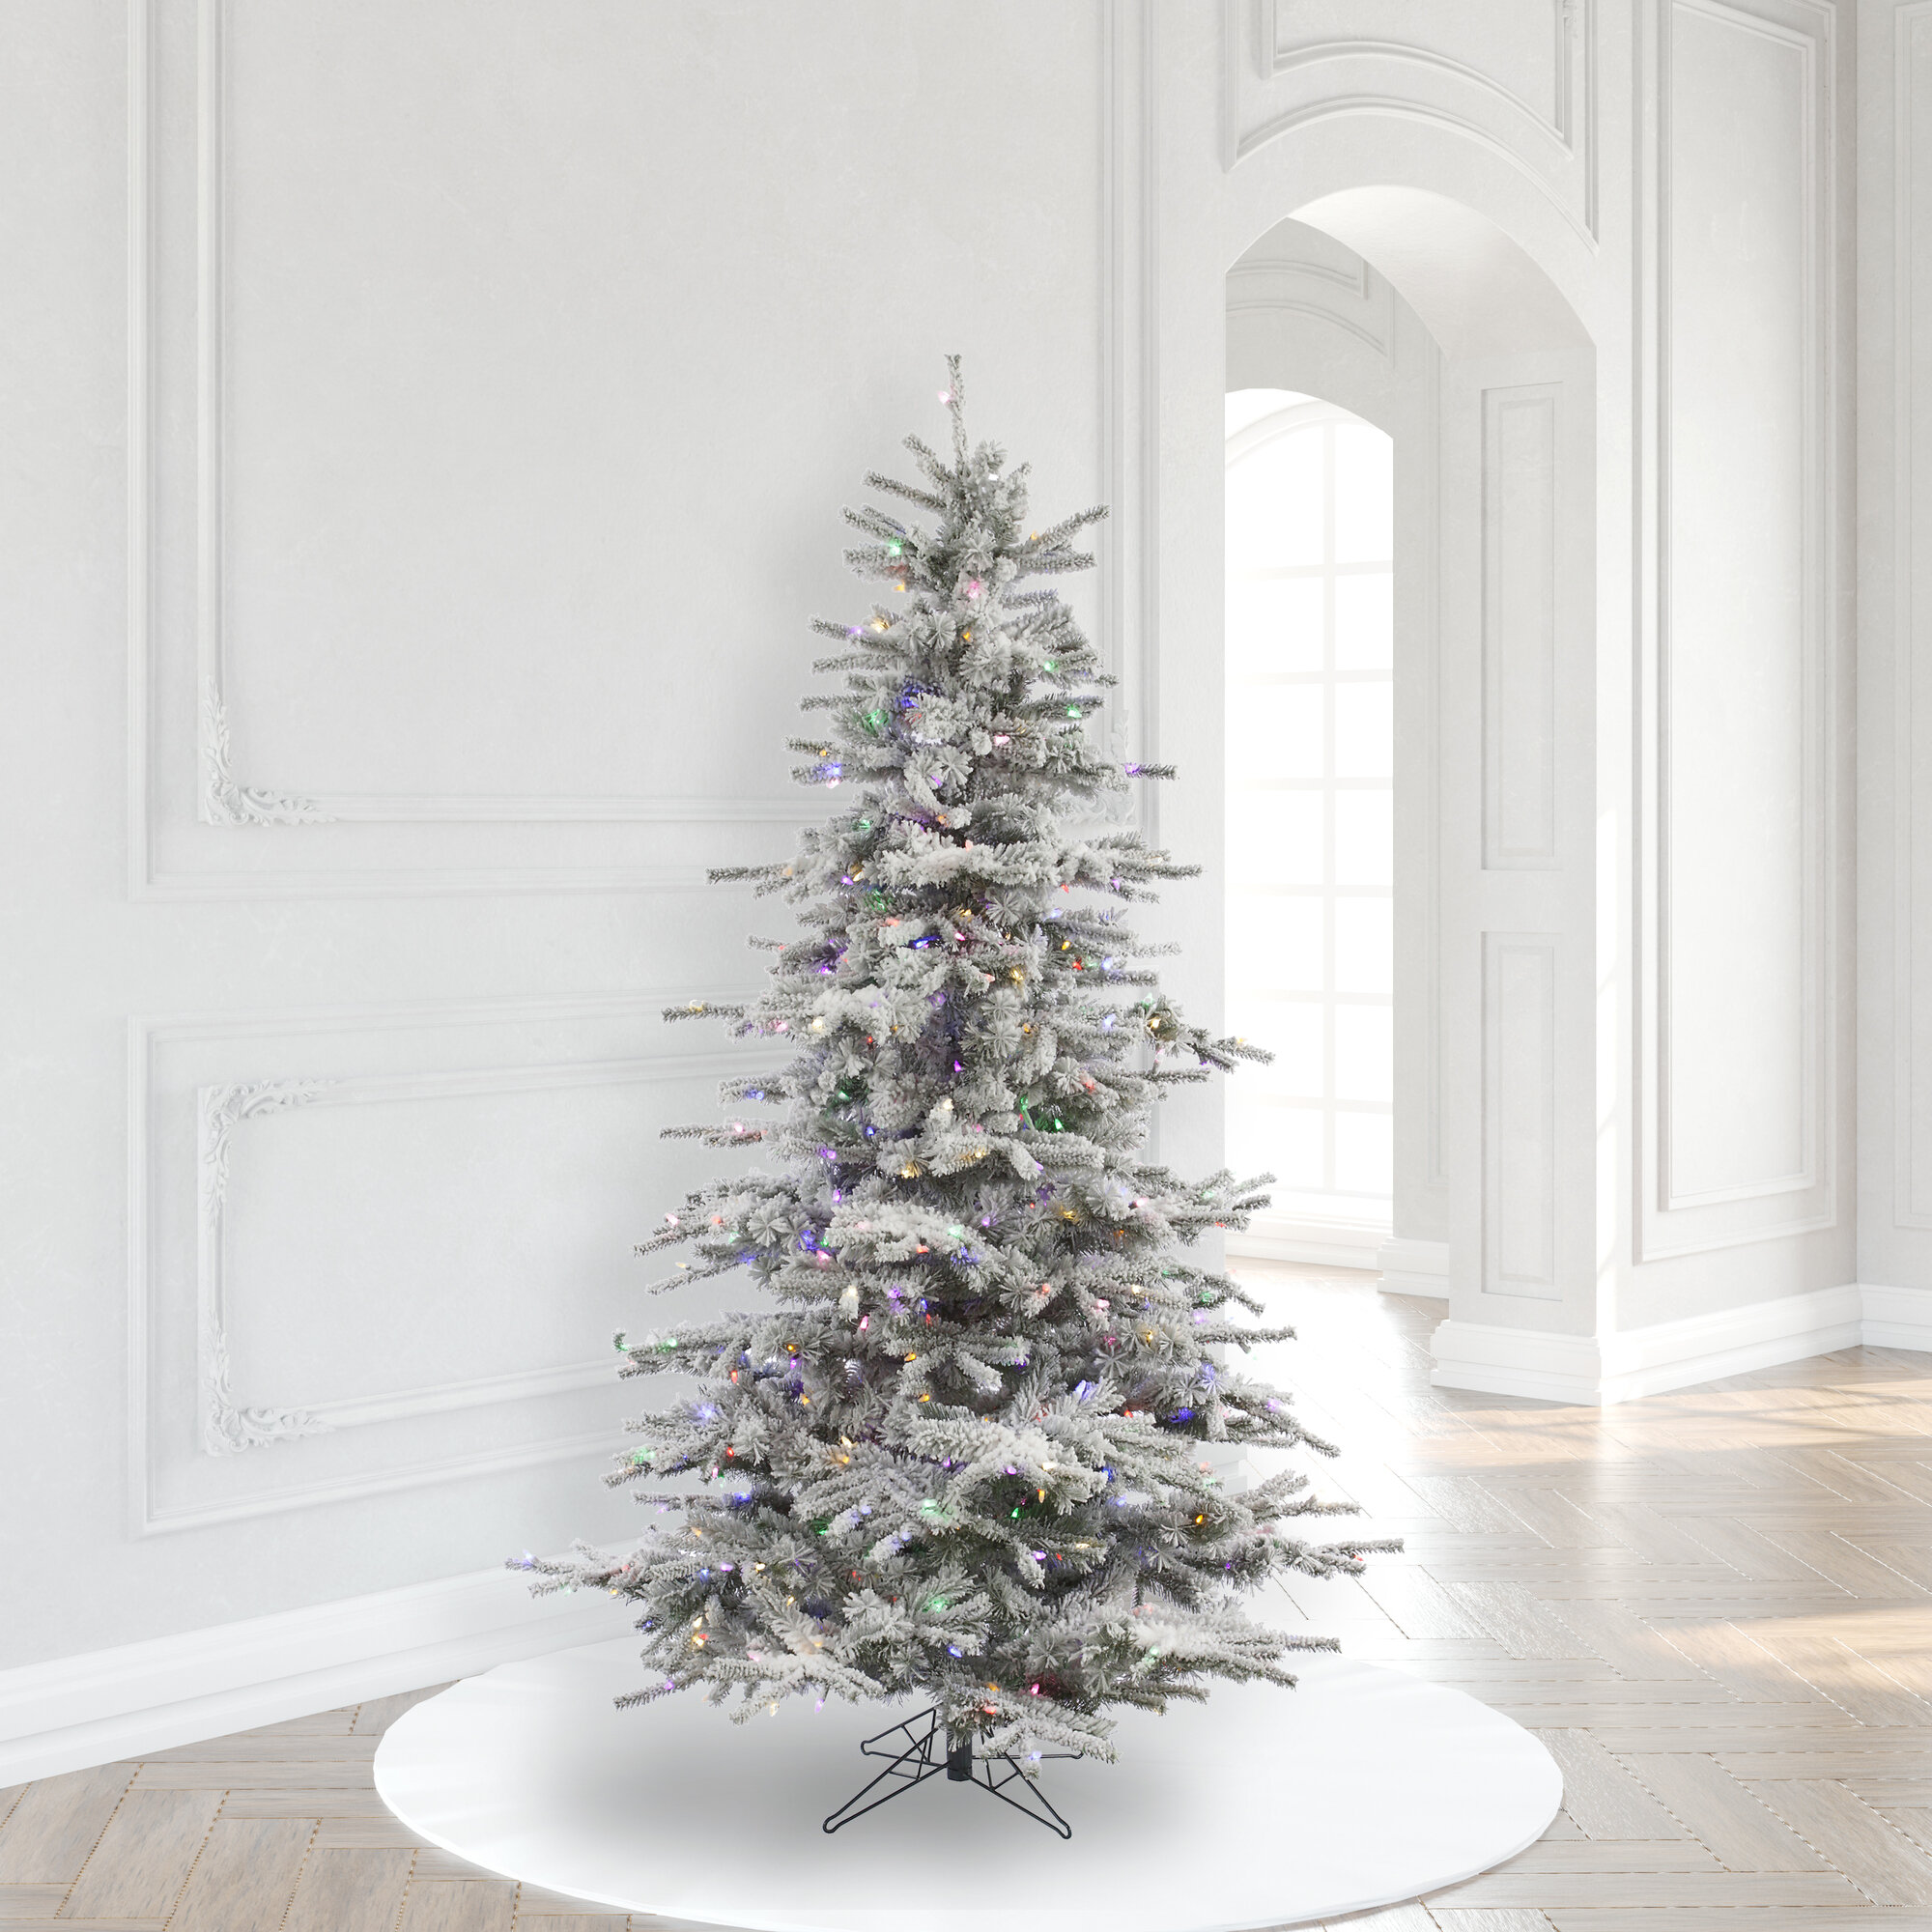 The Holiday Aisle Sierra Flocked 6 5 White Fir Artificial Christmas Tree With 550 Multi Colored Lights Reviews Wayfair